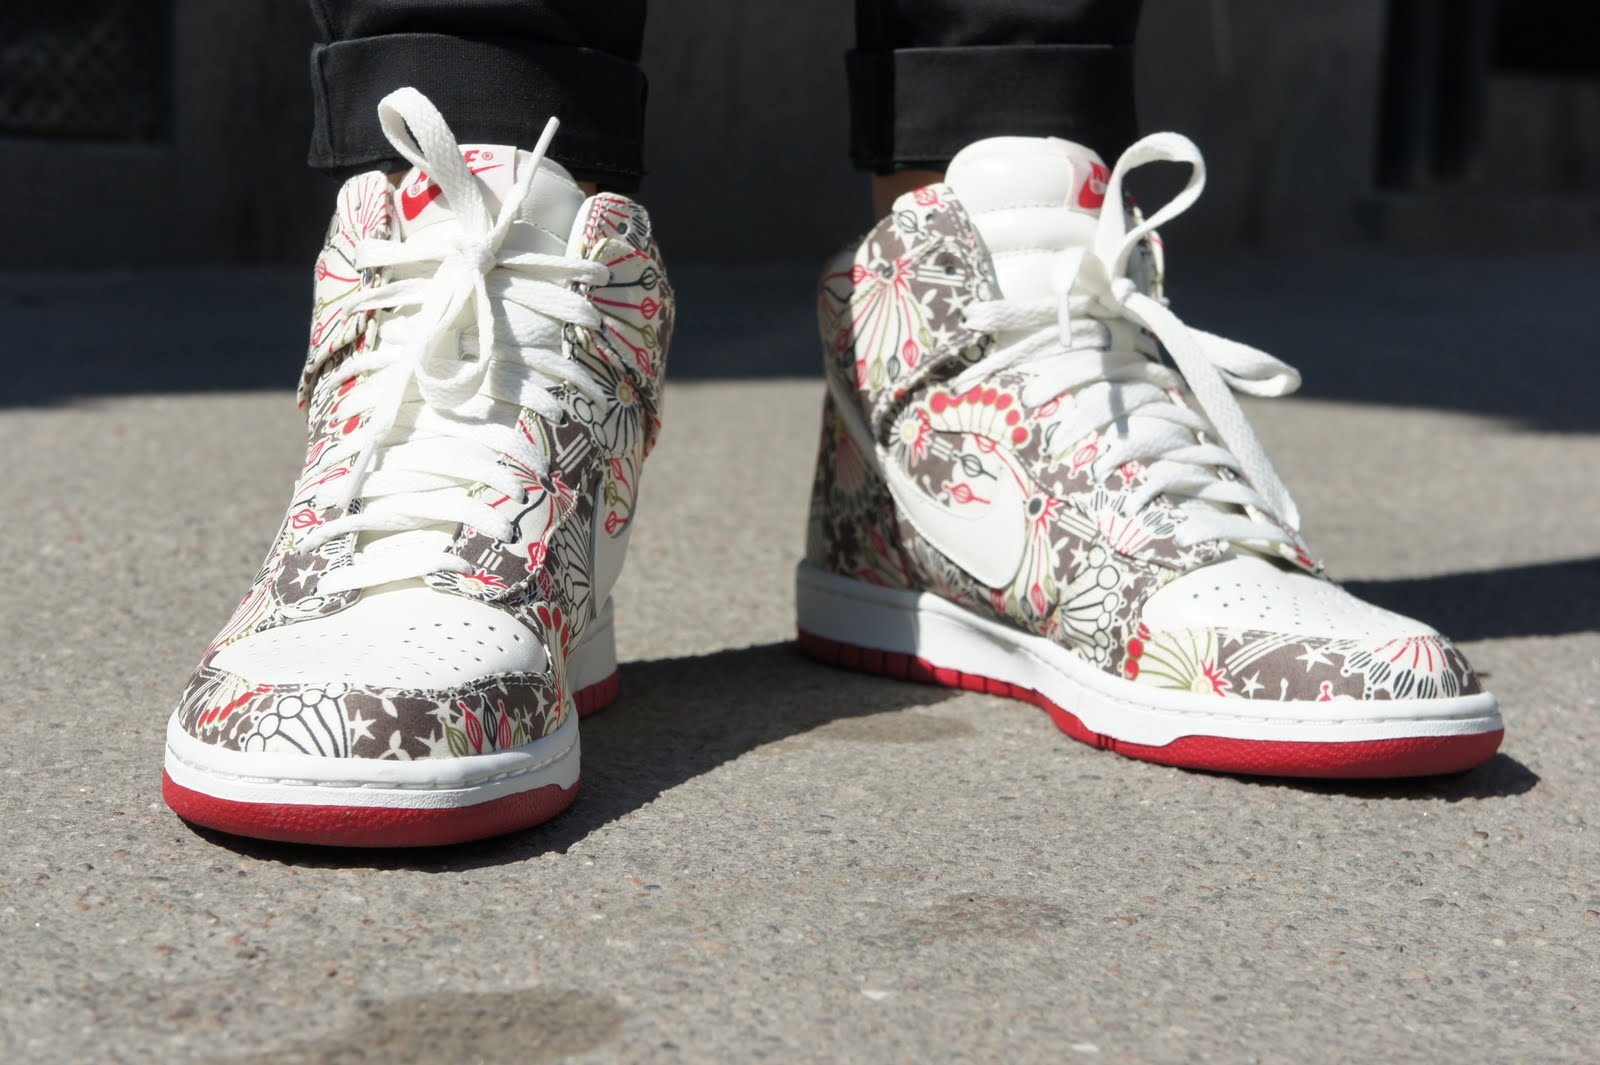 8a710c4bf Nike and Liberty 2011 collaboration has landed! Jump over to SFD Blog for  more info!